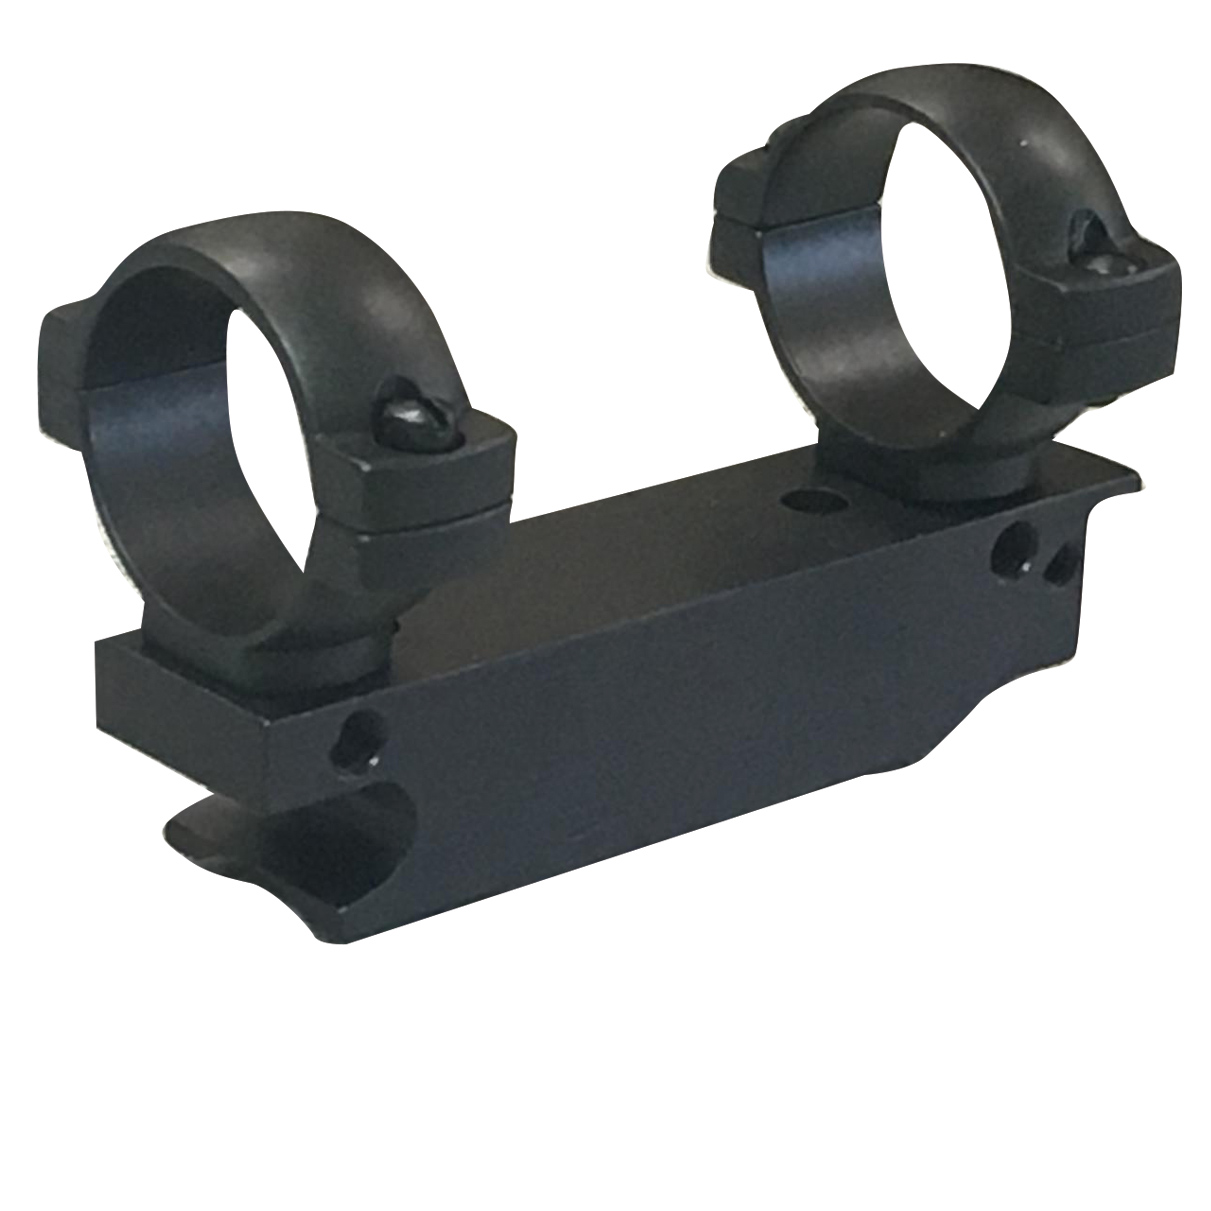 Turkish Mauser Scout Mount Includes Rings S Amp K Scope